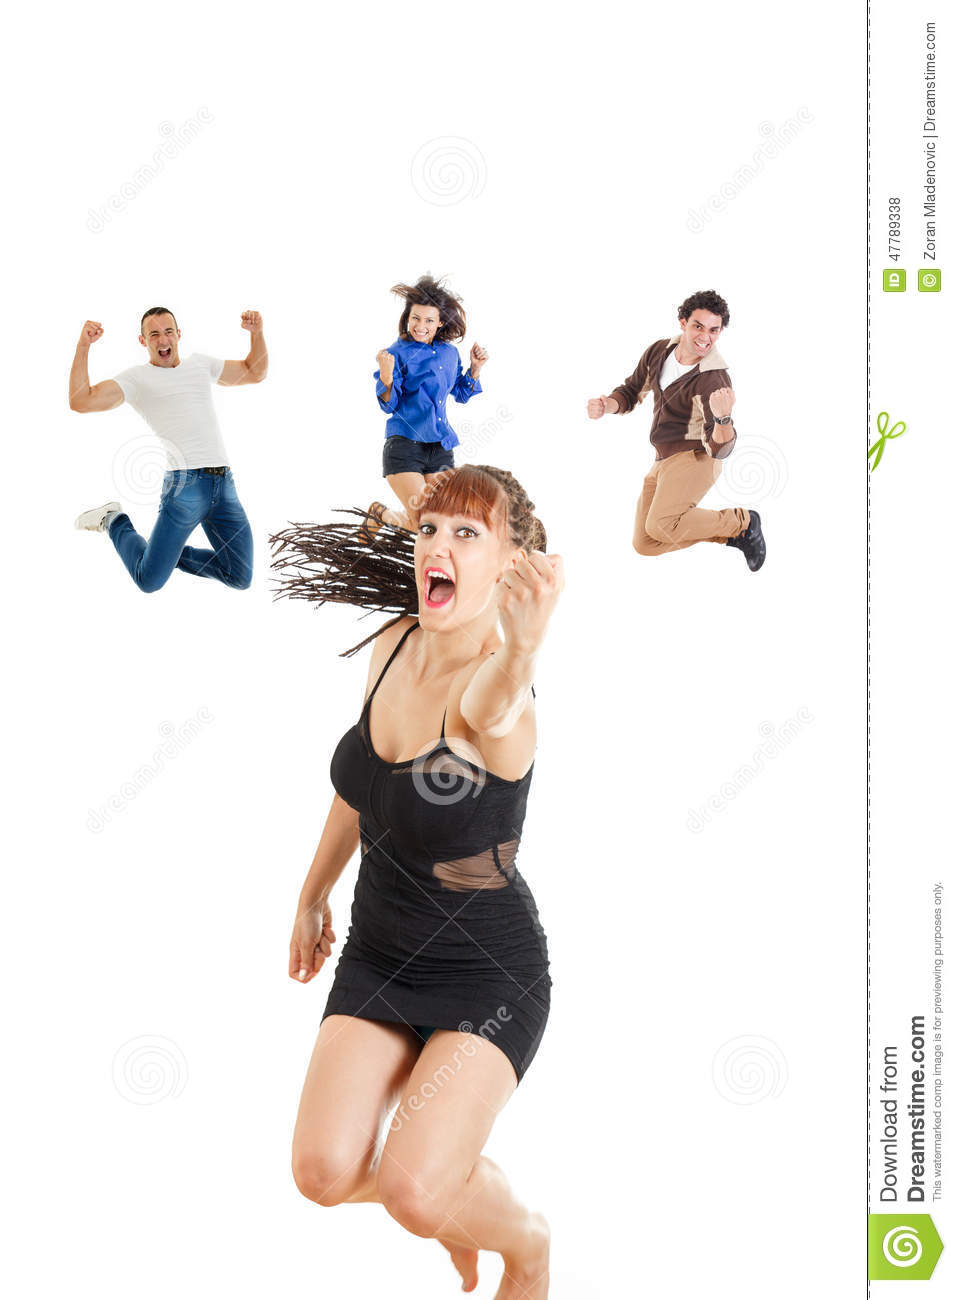 Glamour woman in dark dress or girl jumping with fist up of joy